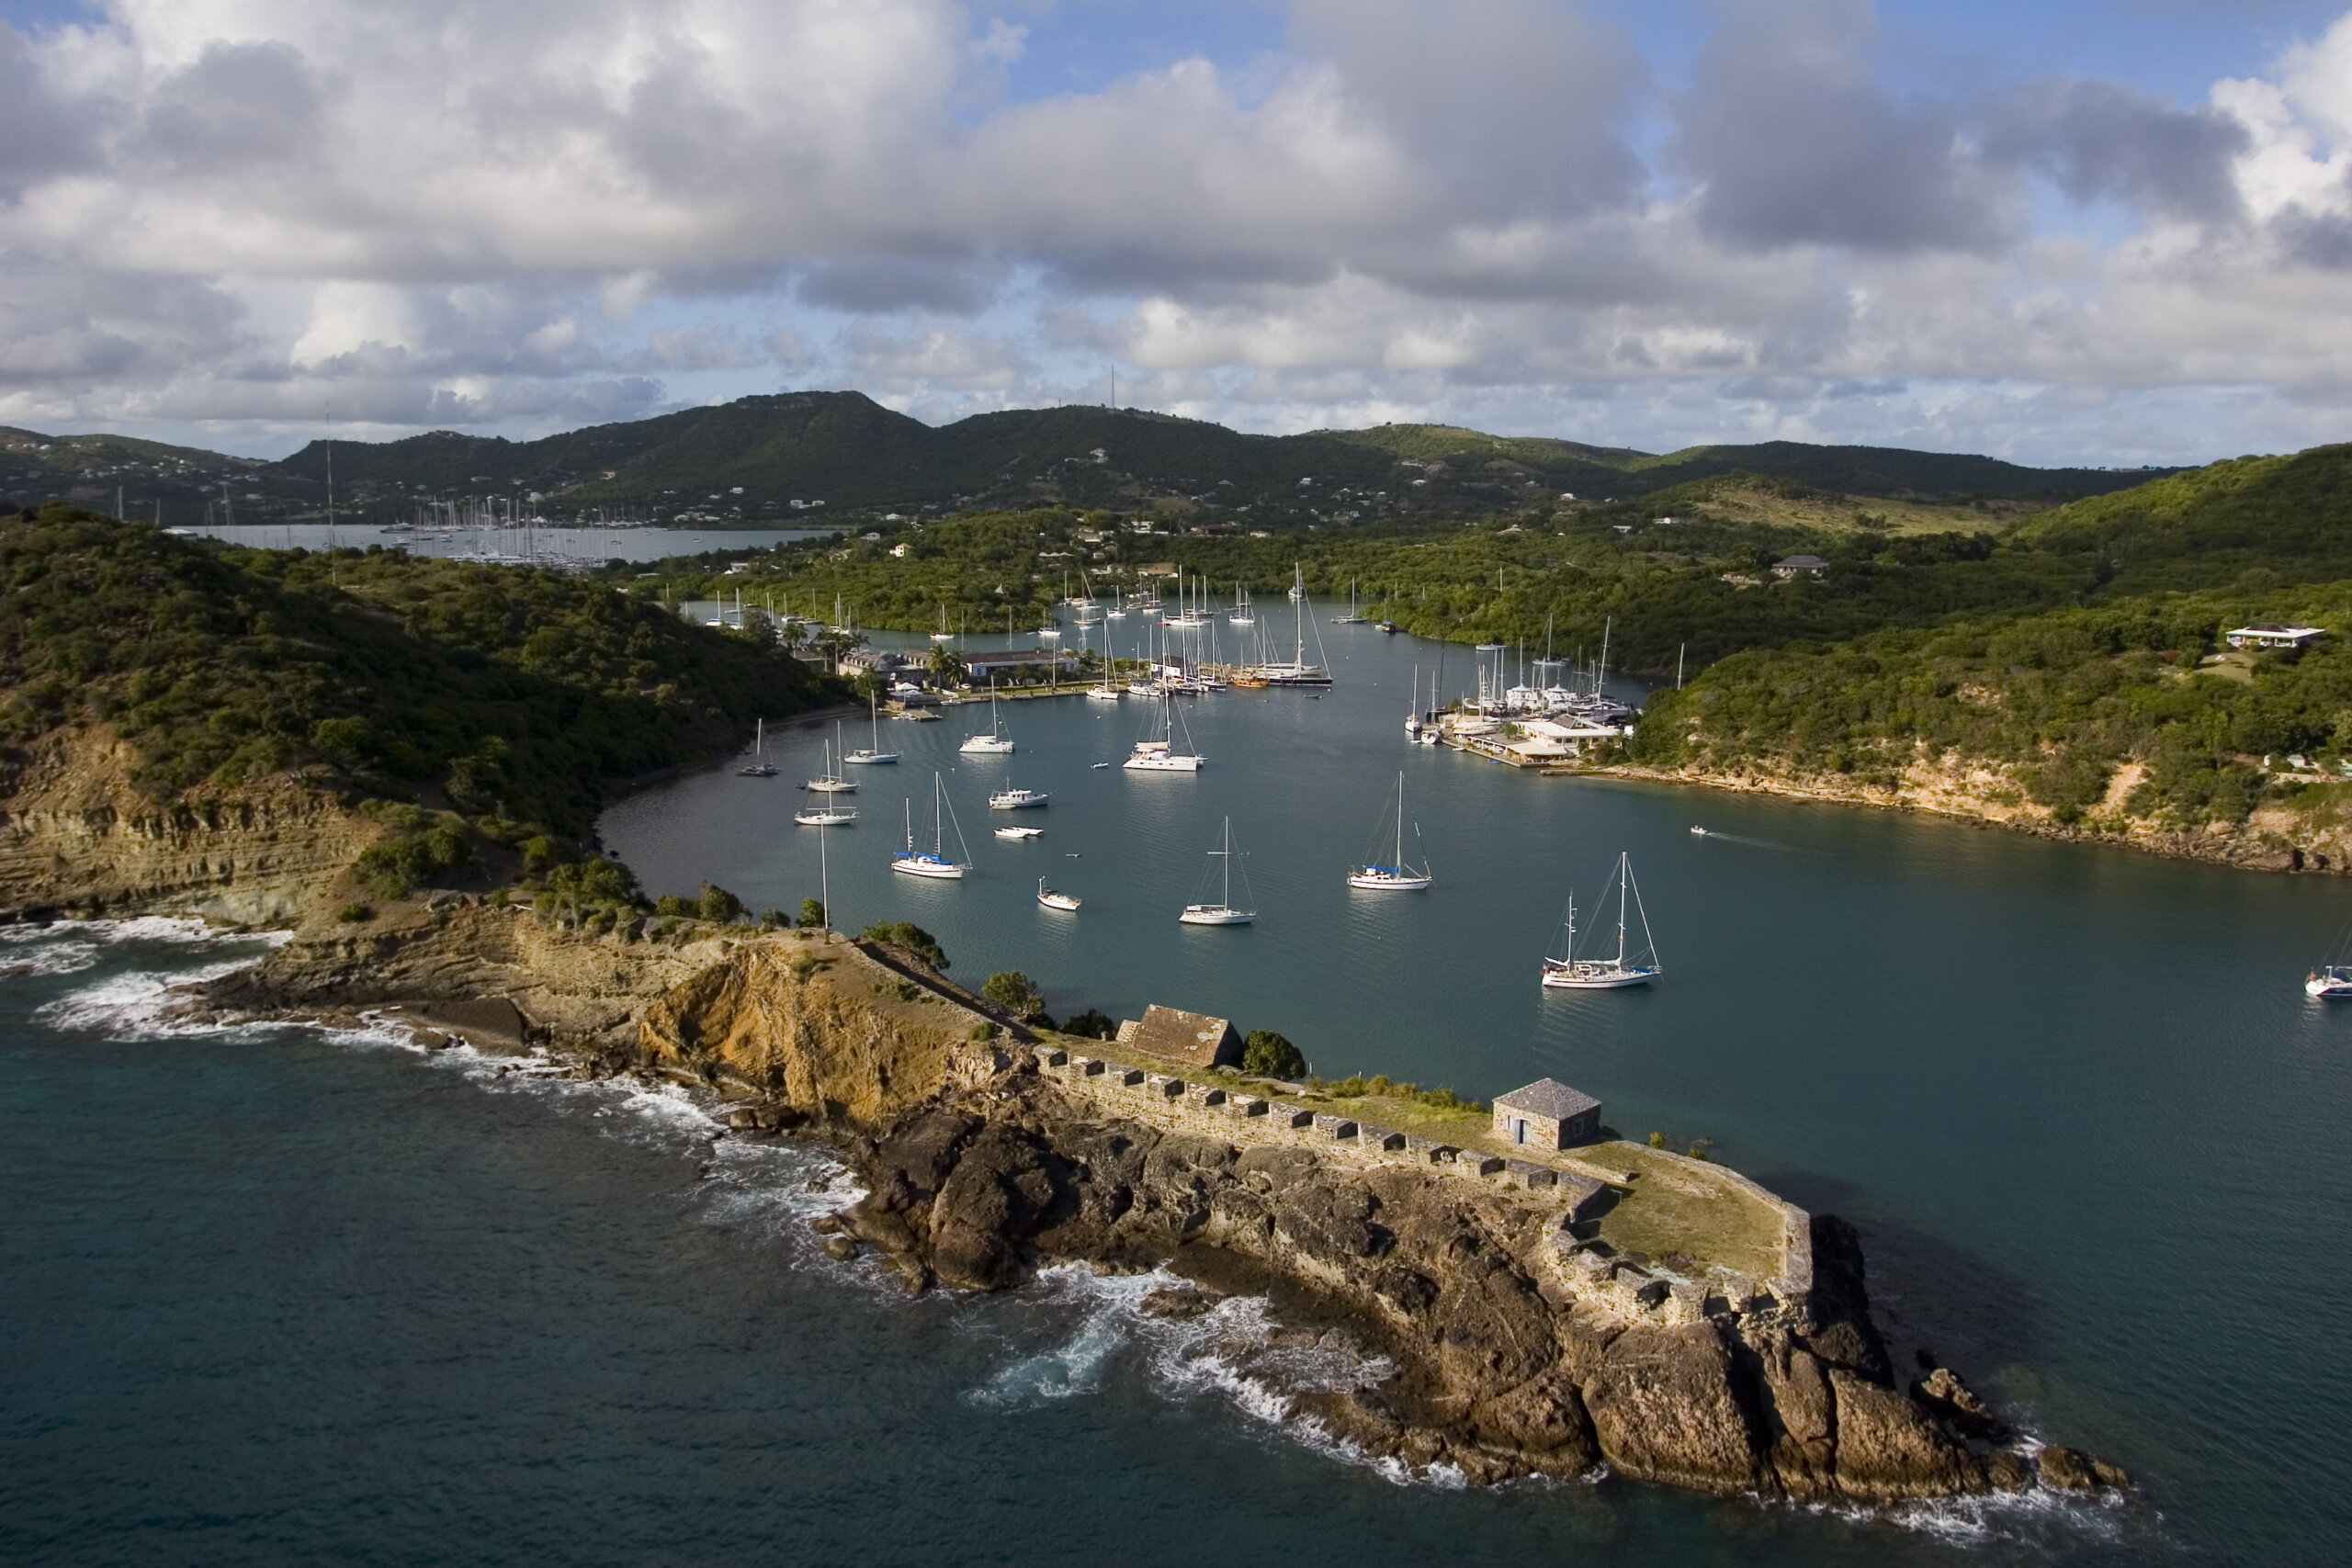 Entrance to English Harbour Antigua showing Nelson's Dockyard and the Antigua Slipway